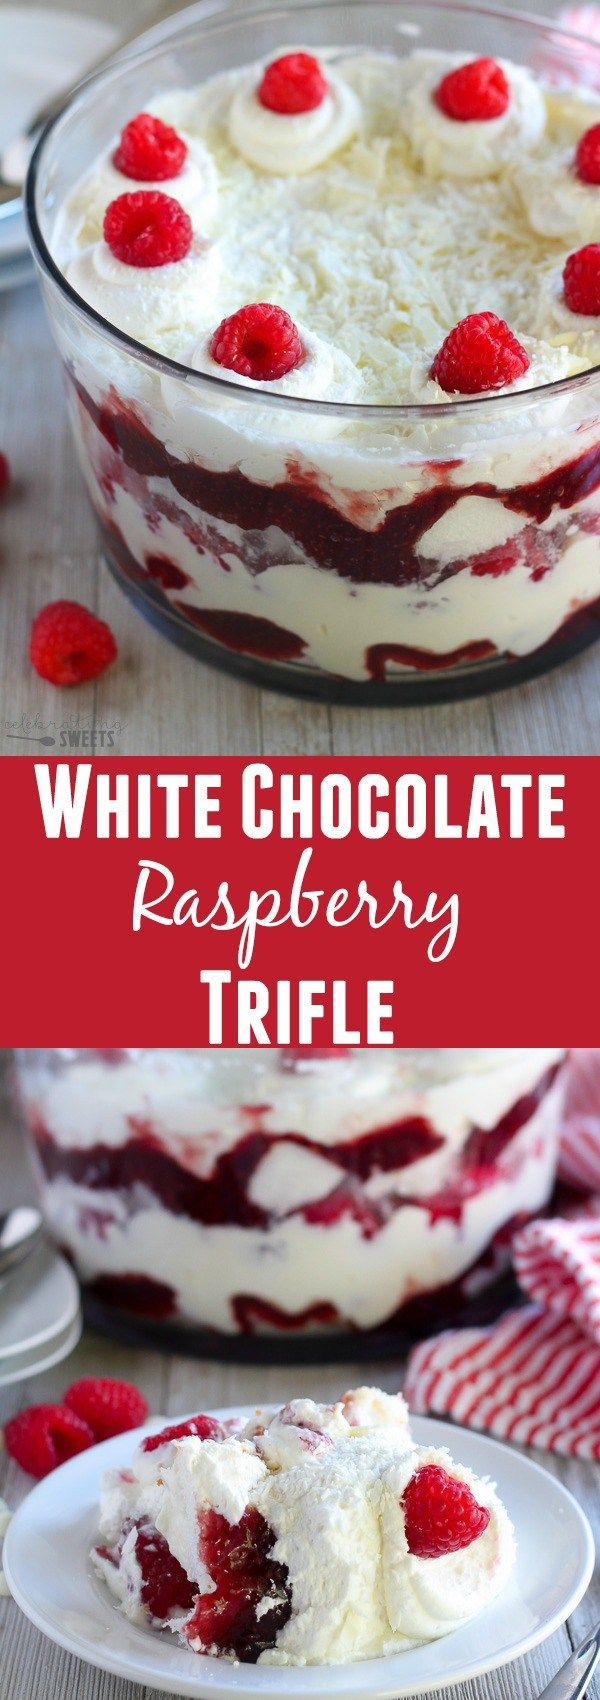 White Chocolate Raspberry Trifle  A white chocolate raspberry trifle made from layers of cake white chocolate mousse whipped cream raspberry jam and fresh raspberries A b...